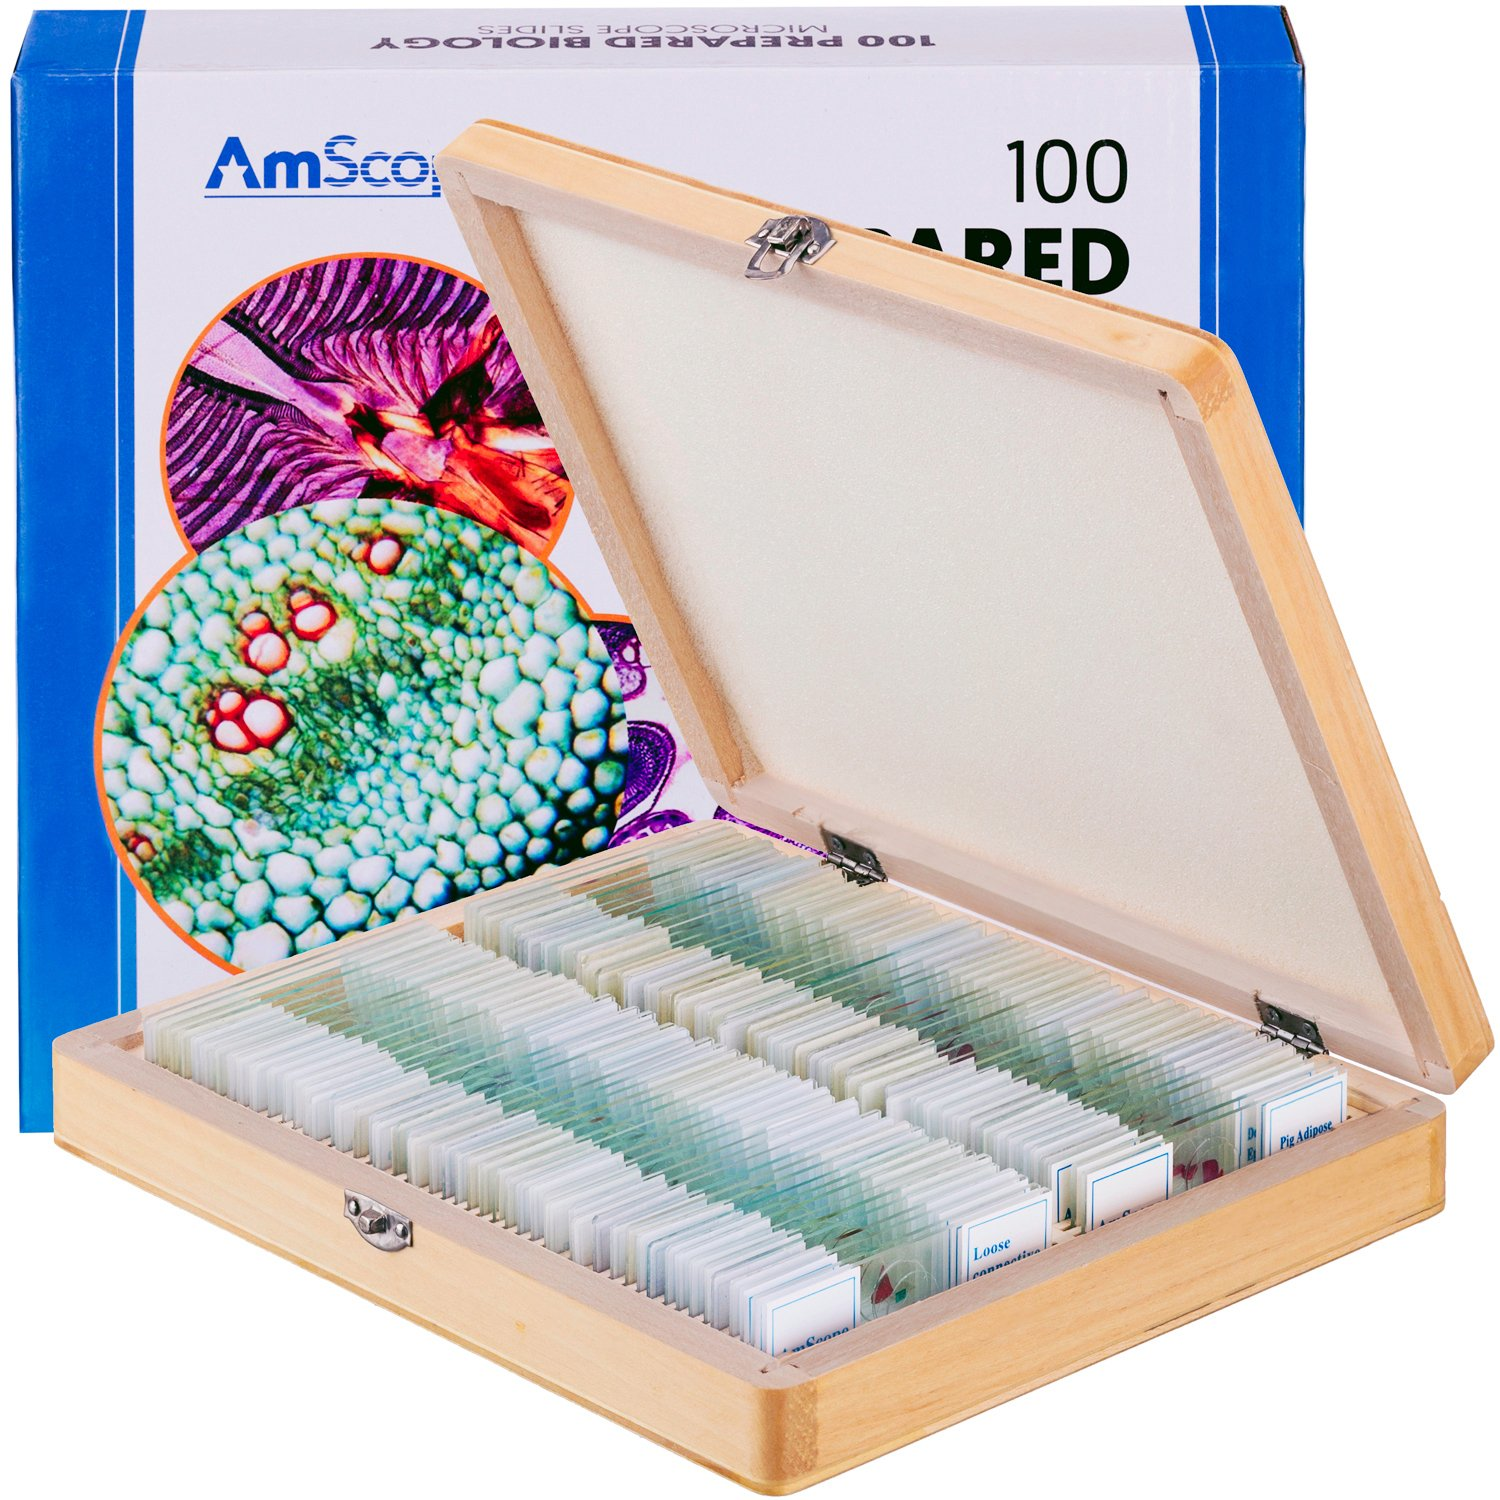 AmScope PS100E Basic Biology Prepared Slide Set for Student and Homeschool Use, Set of 100 Prepared Glass Slides (Set E), Includes Fitted Wooden Storage Box United Scope LLC.